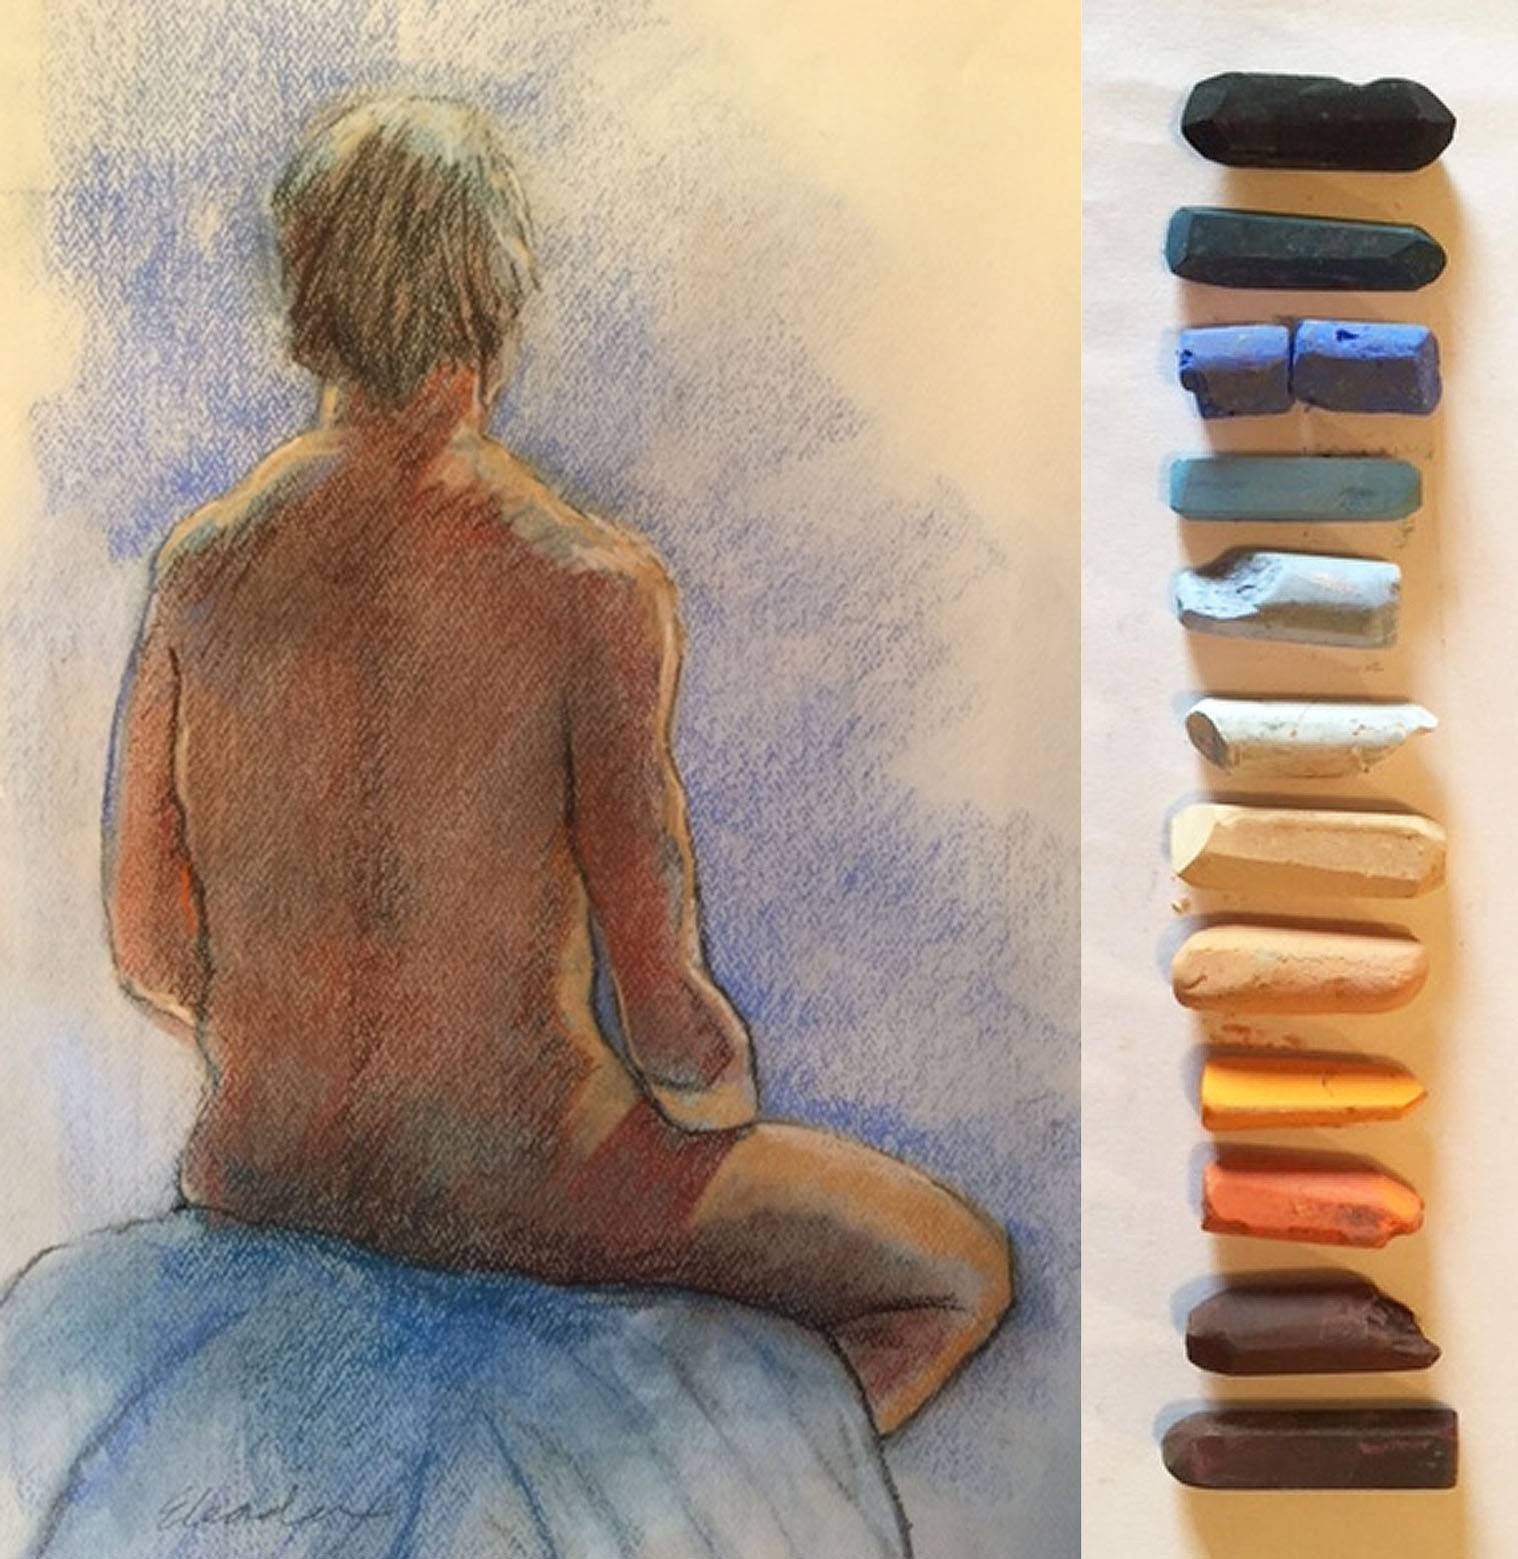 LIFE DRAWING – AN EXERCISE IN CALM FOCUS